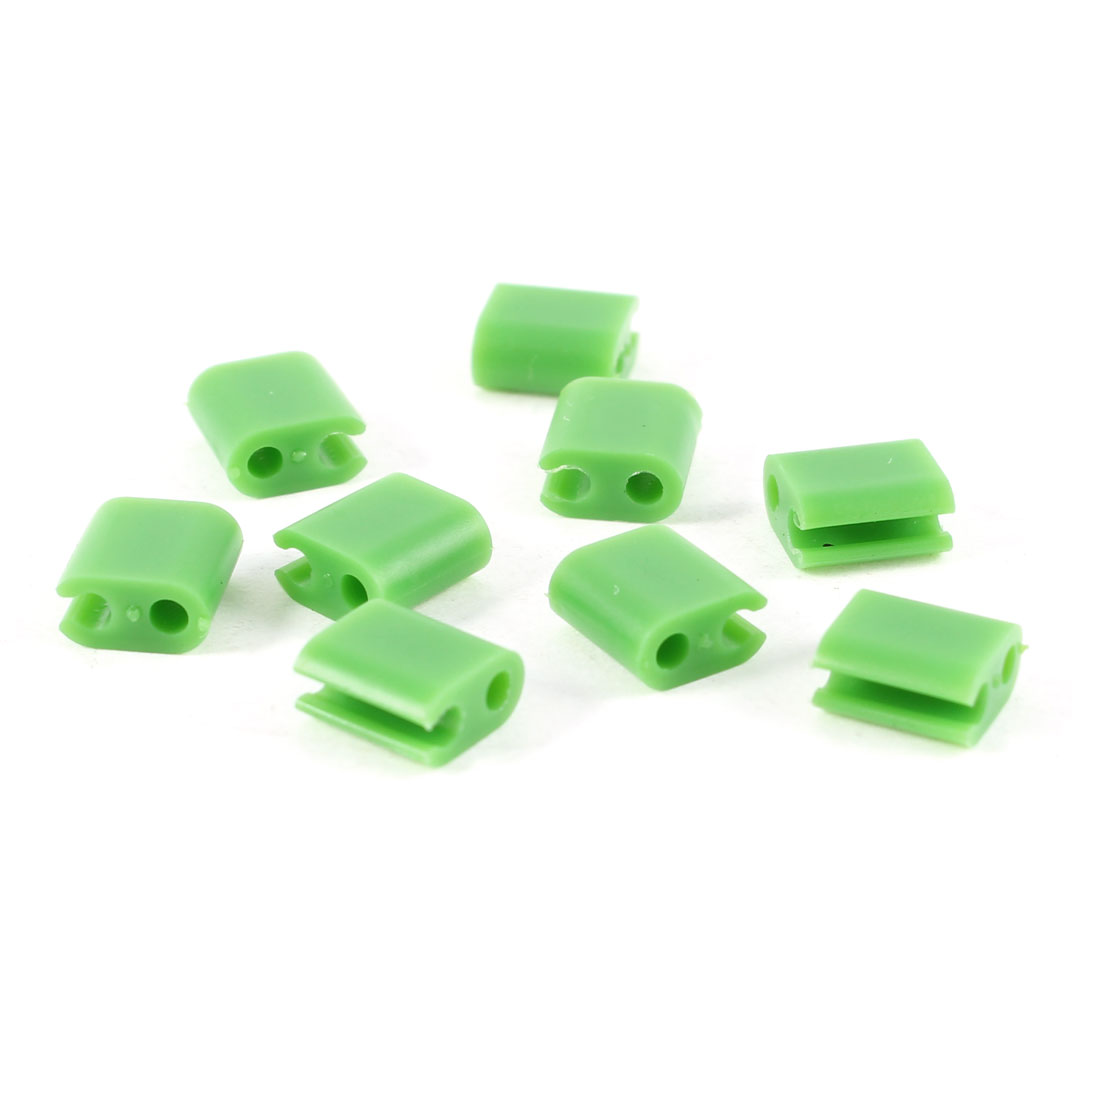 Green Plastic 2mm Headphone Earphone Line Wire Fixer Clips Holder 9 Pcs